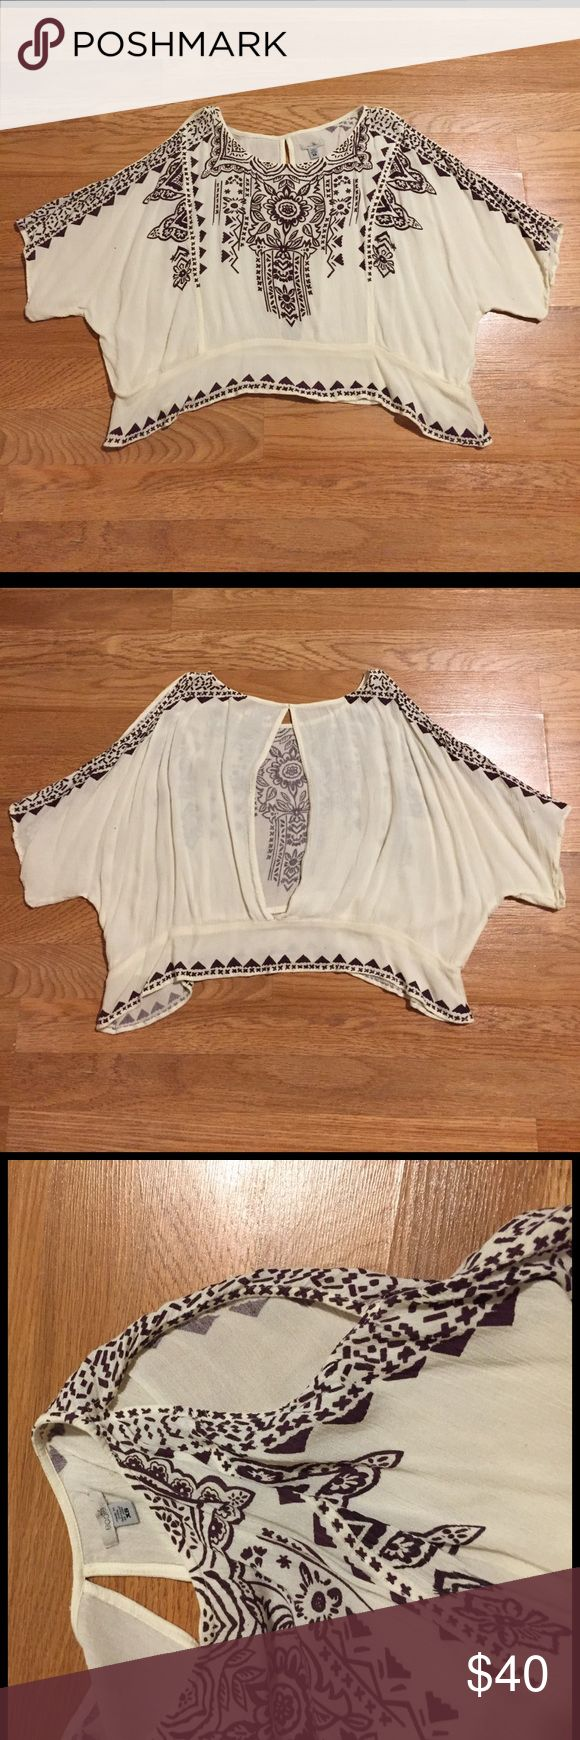 Open shoulder crop top festival blouse Artsy top from Ecoté at Urban Outiftters. Cropped and also open shoulder, with a slightly open back. Design is a dark purple. Can model if needed. Open to offers. Just want to get rid of stuff **not free people Free People Tops Blouses